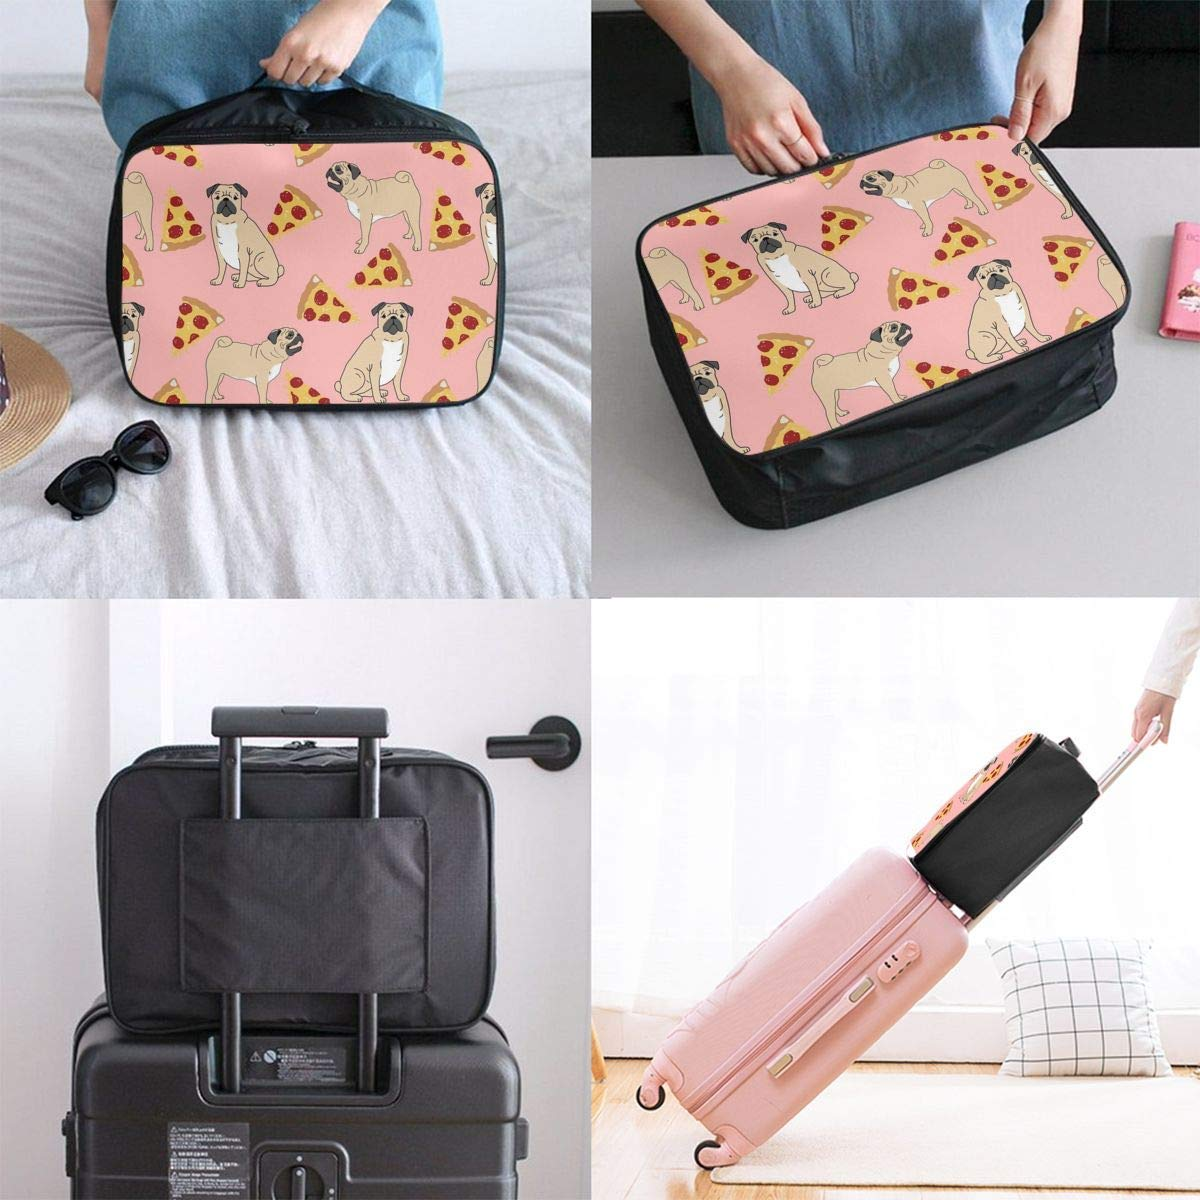 JTRVW Luggage Bags for Travel Pug Pizza Pink Travel Lightweight Waterproof Foldable Storage Carry Luggage Duffle Tote Bag